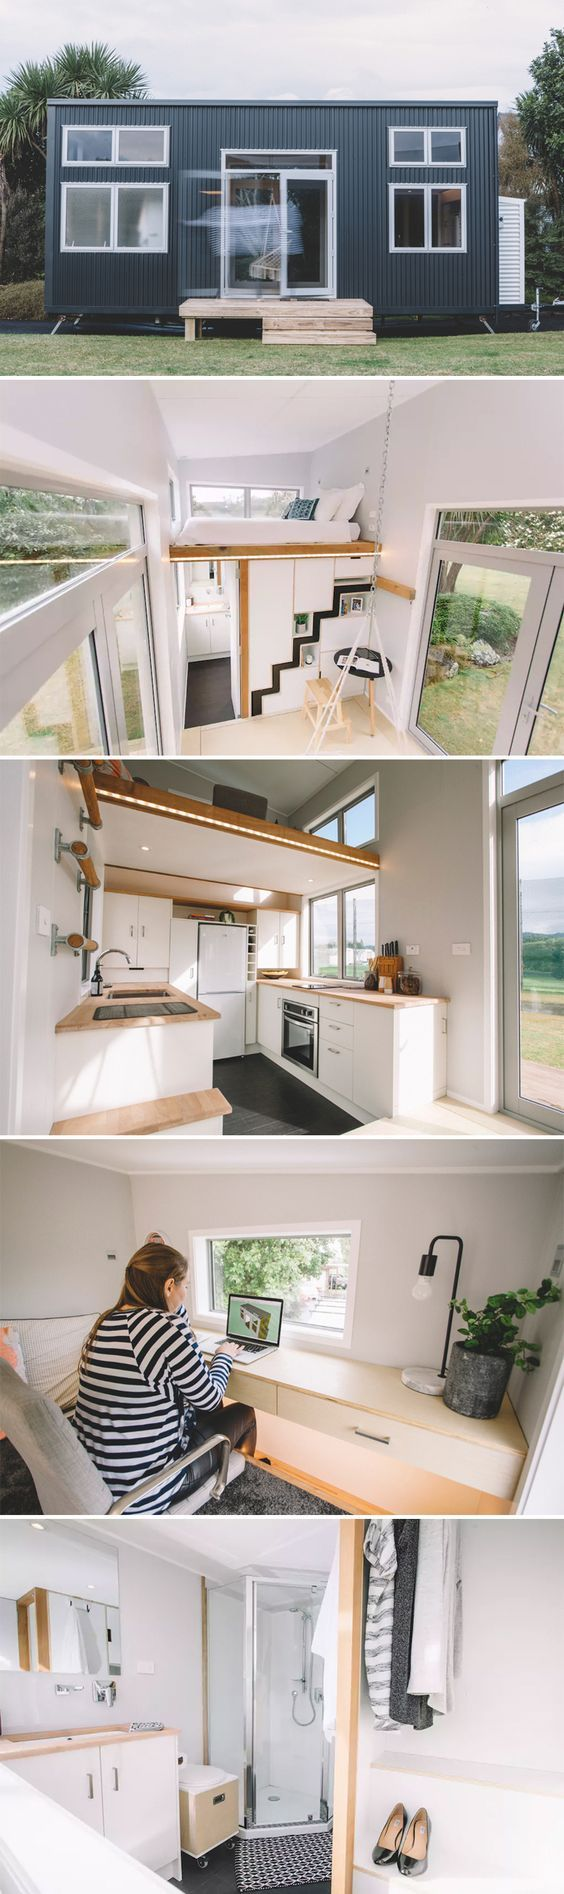 From New Zealand tiny house builder Build Tiny is the Millennial Tiny House, available for rent through Airbnb and located in Katikati, Bay of Plenty.